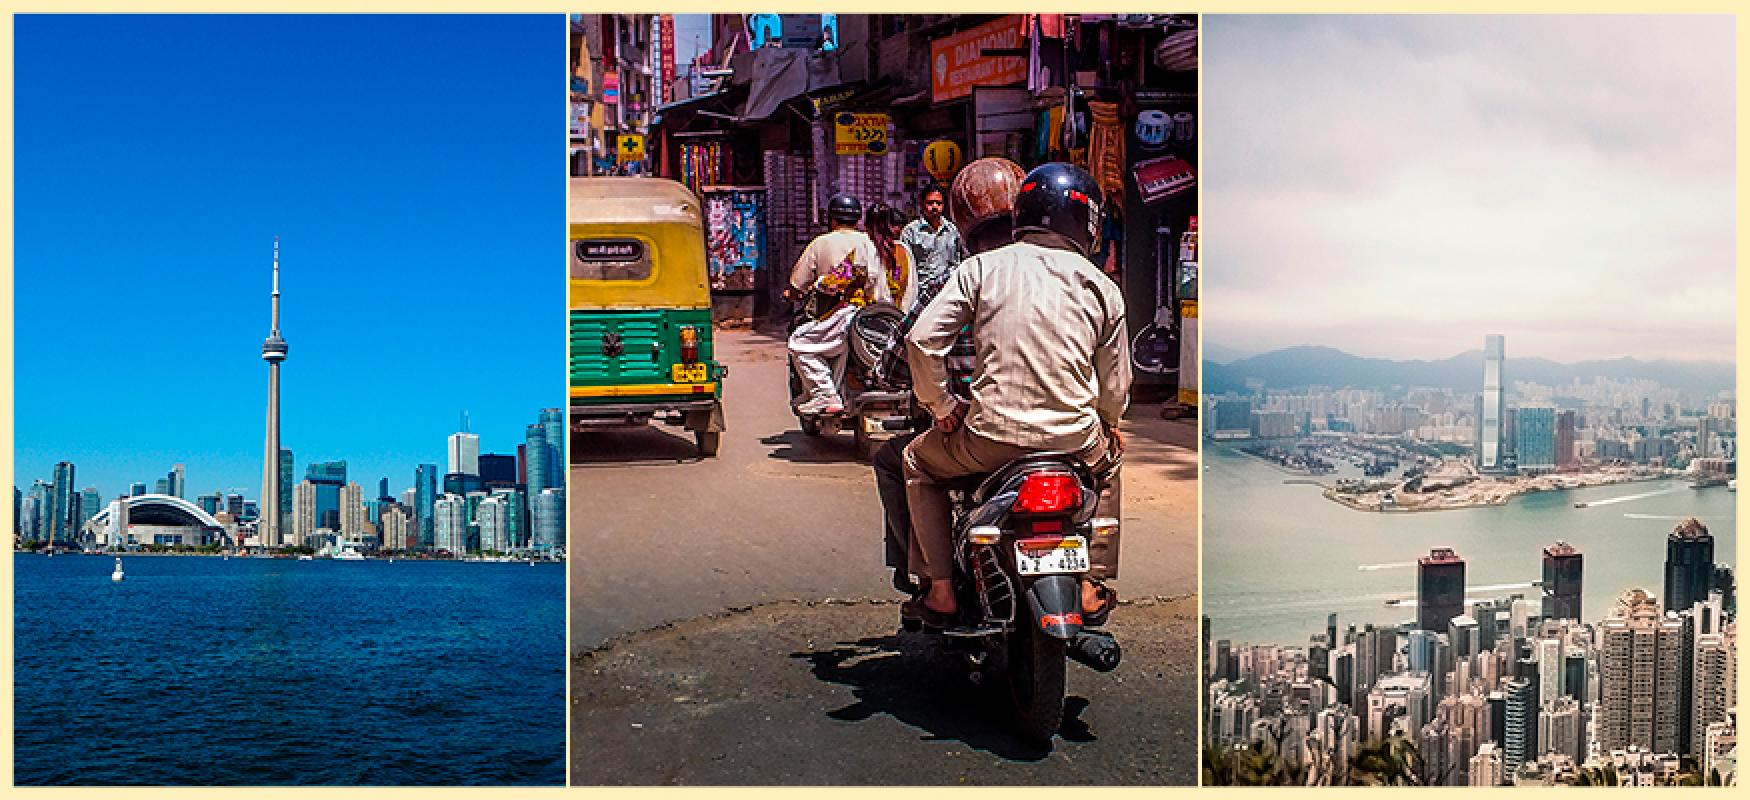 Three photos of the Toronto skyline, a motorcycle in Mumbai and the Hong Kong skyline.